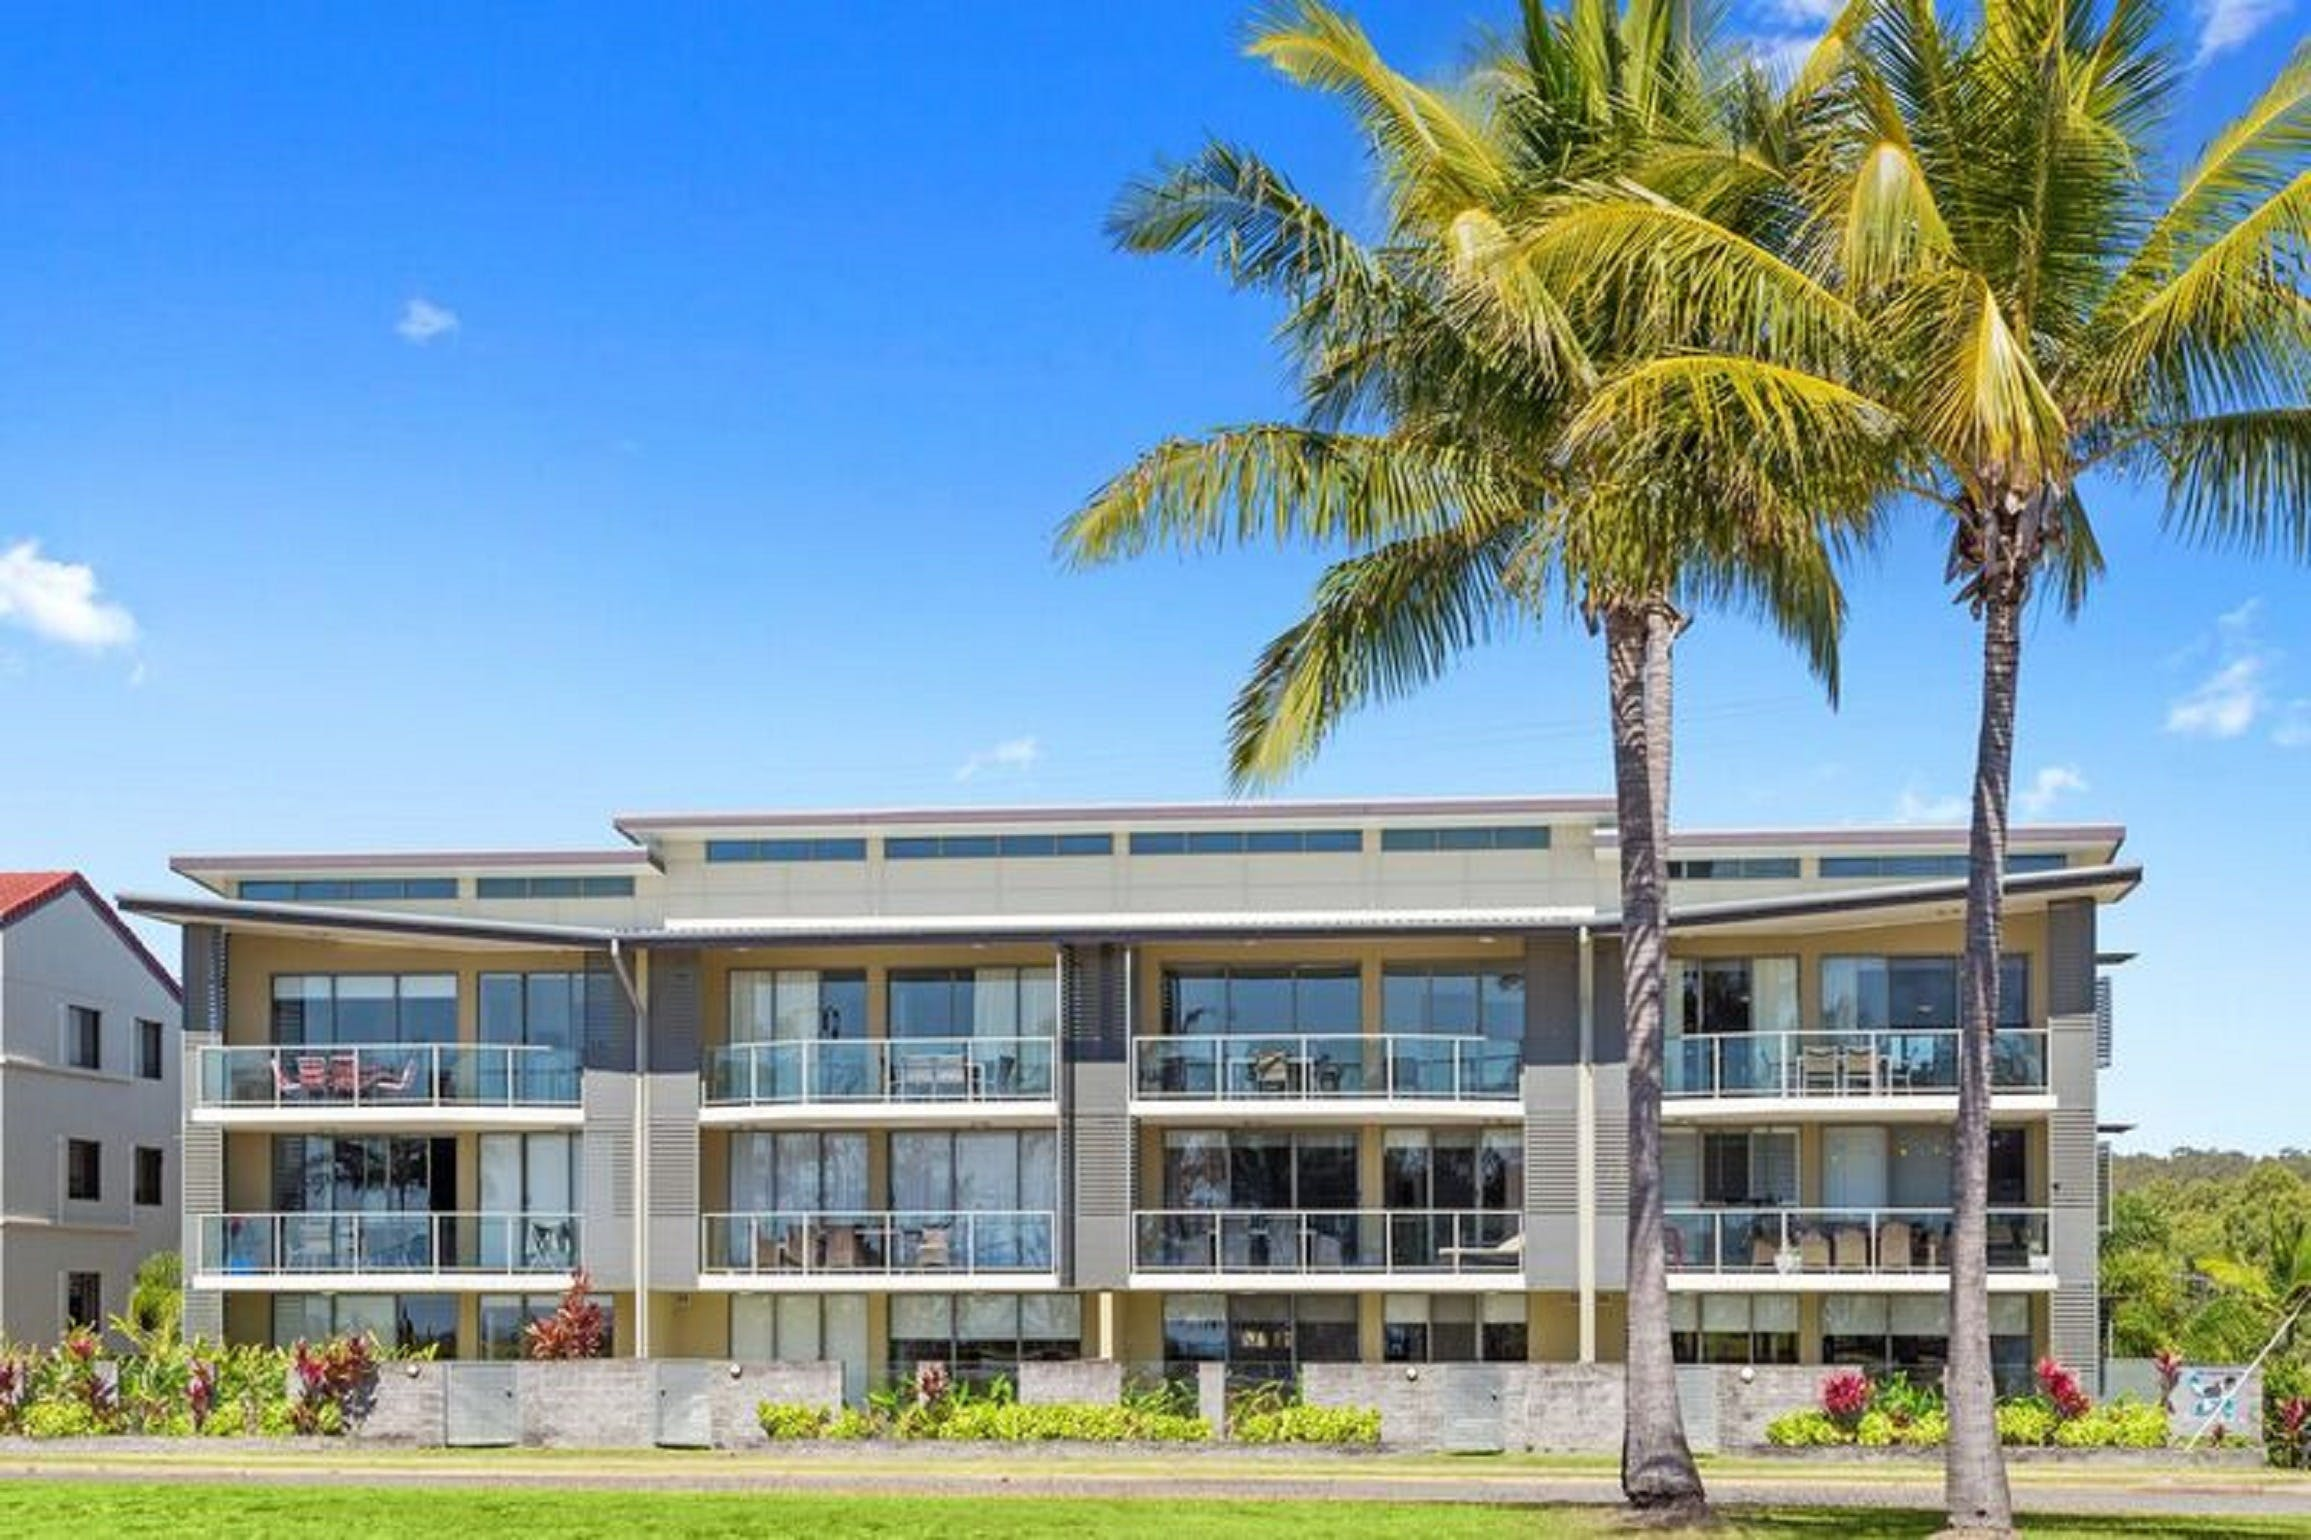 Beaches On Lammermoor Apartments - Accommodation Coffs Harbour